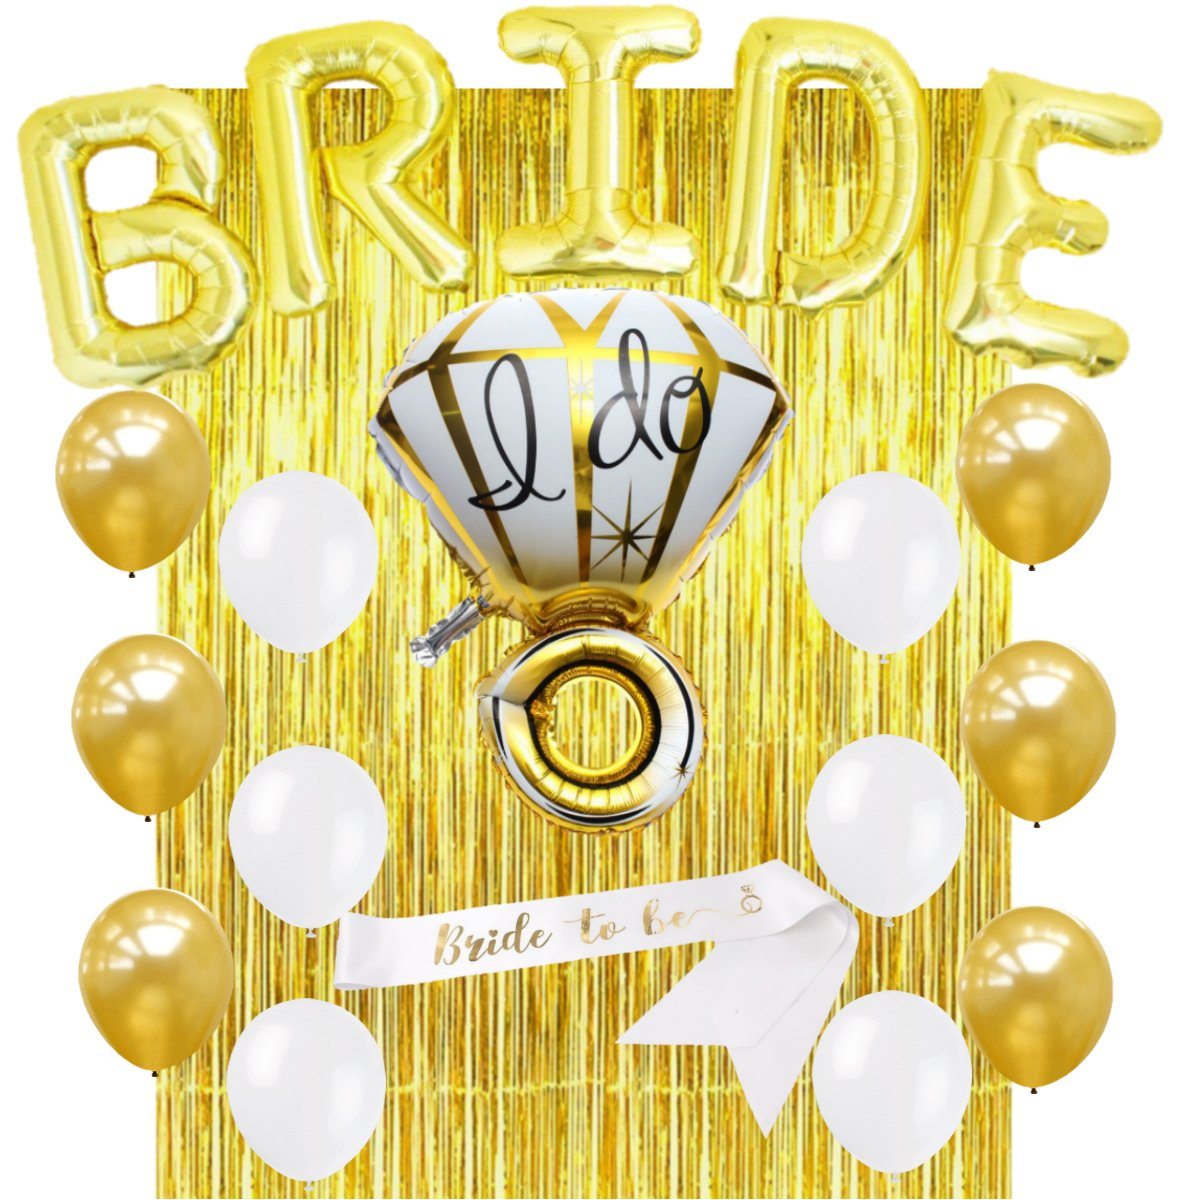 Bachelorette Party Decorations Kit - Bridal Shower Decorations Kit – Set Includes: 1 Mylar Ring Balloon - 5 Letter Balloons - Foil Fringe Curtain - 1 BRIDE TO BE Sash - 12 Latex Balloons